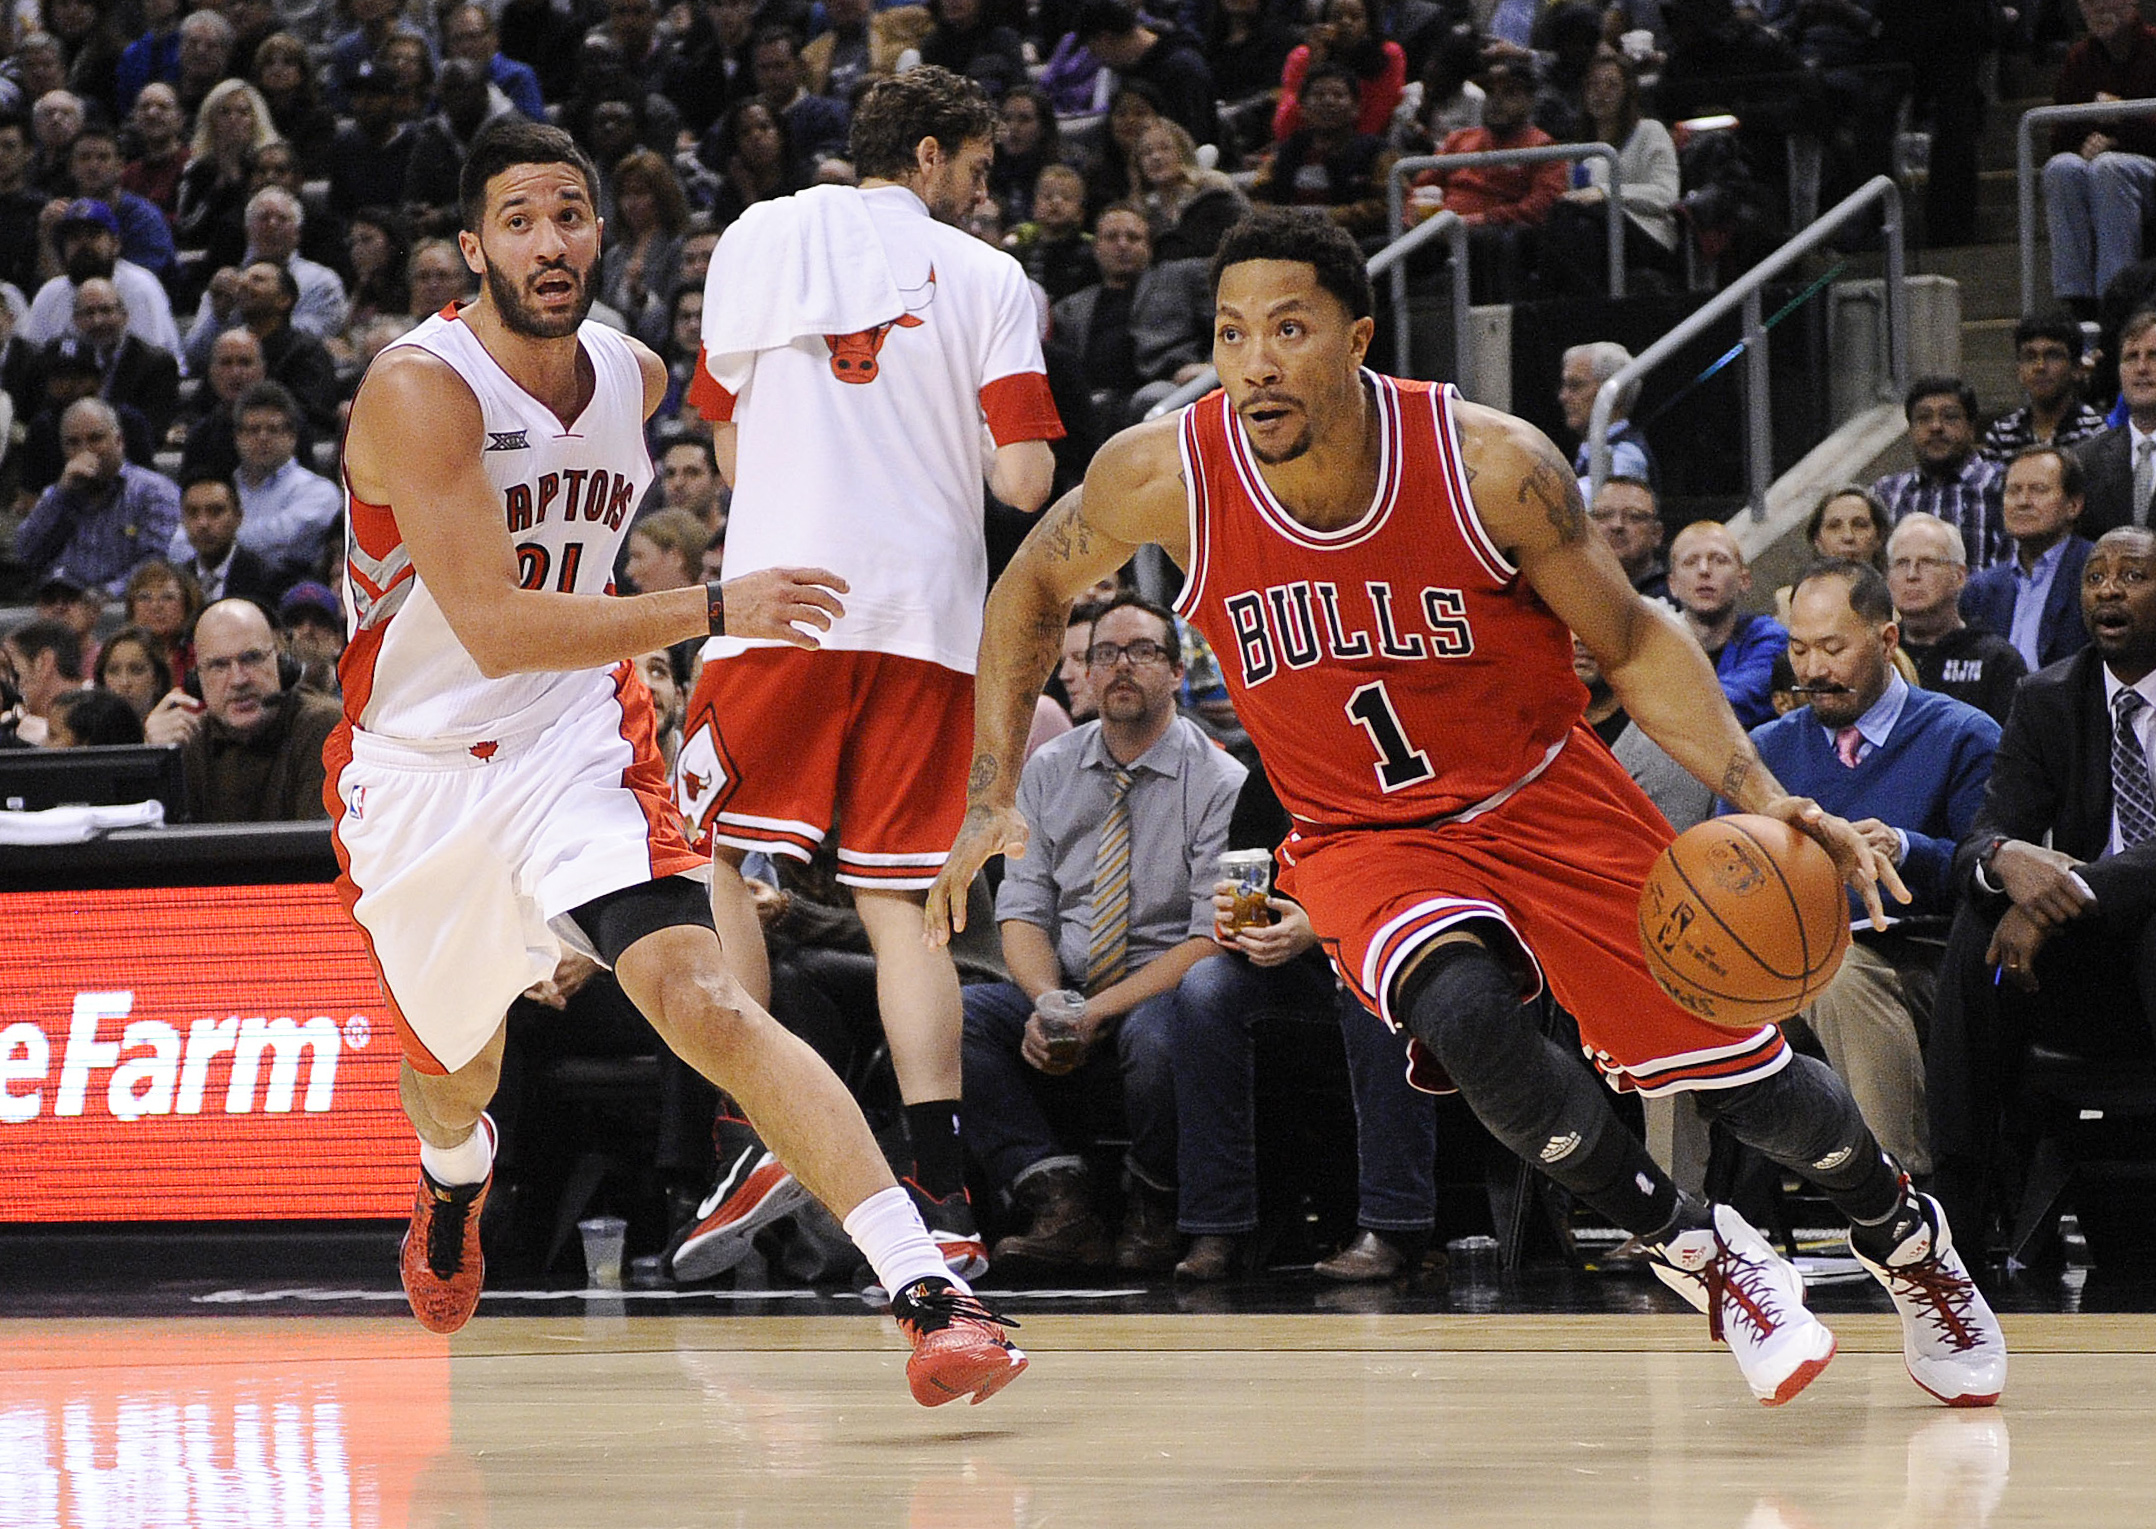 NBA scores: The Bulls win in Toronto but Derrick Rose gets hurt